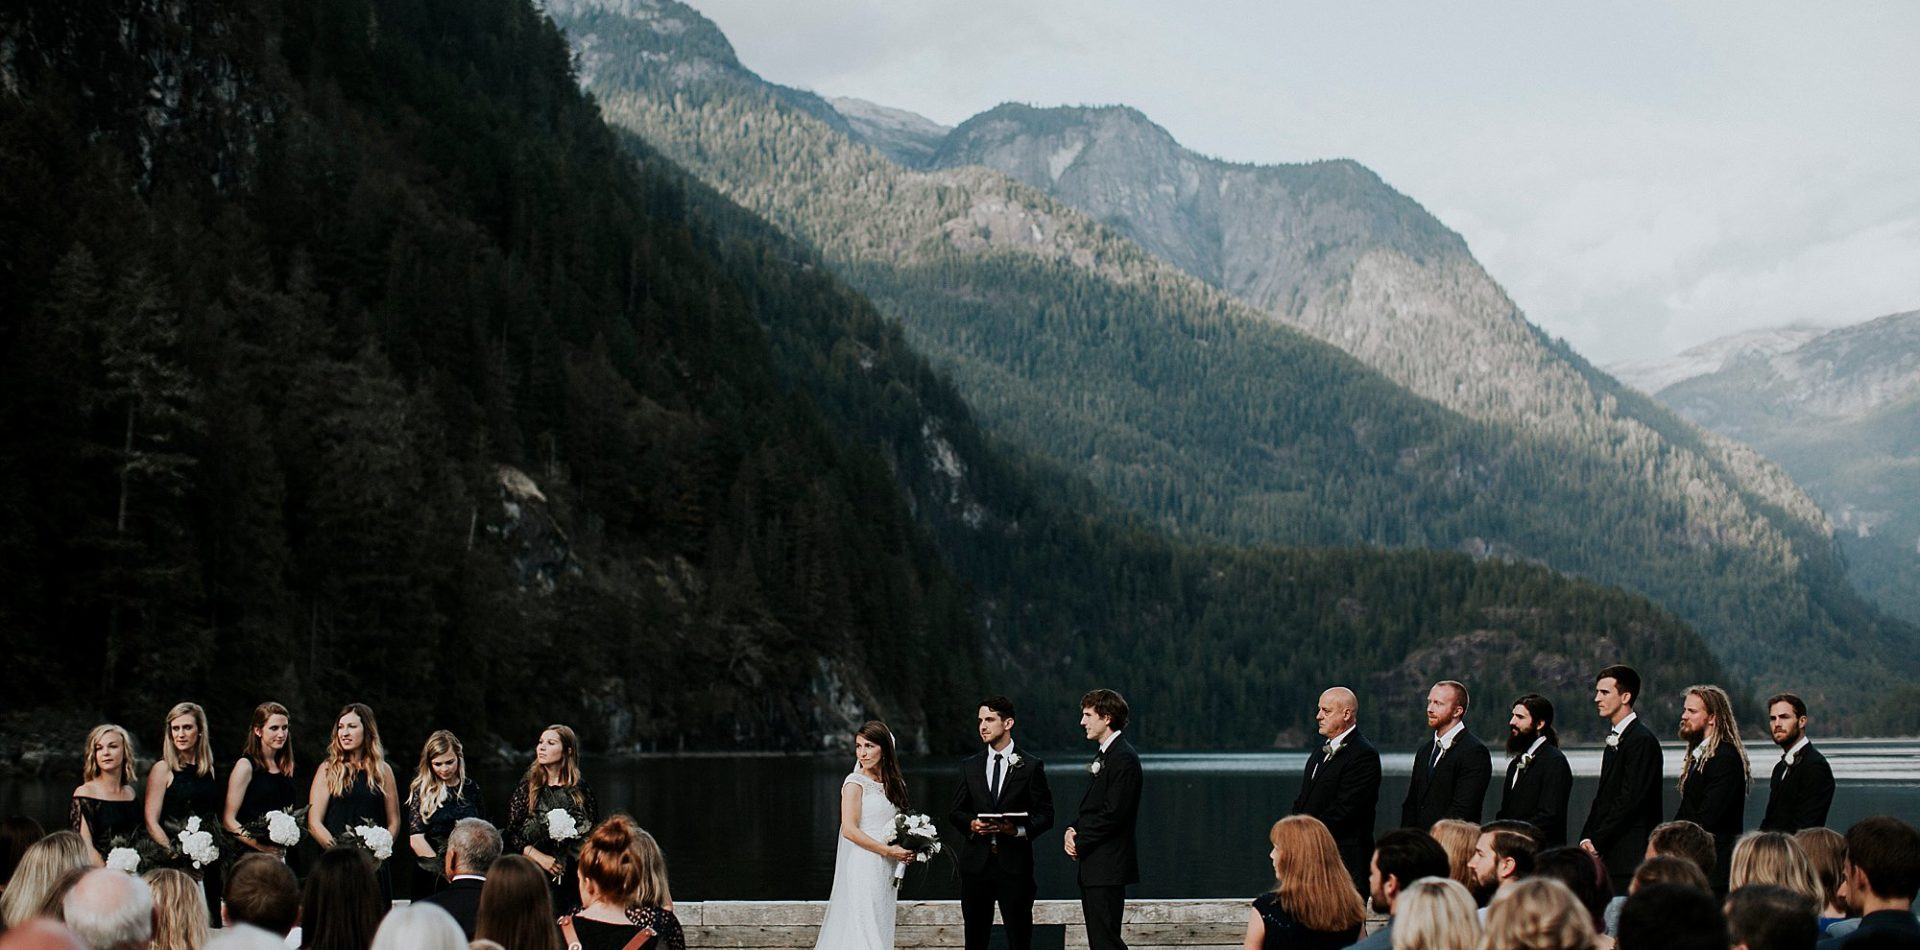 Mike + Emma || Pacific Northwest British Columbia Wedding